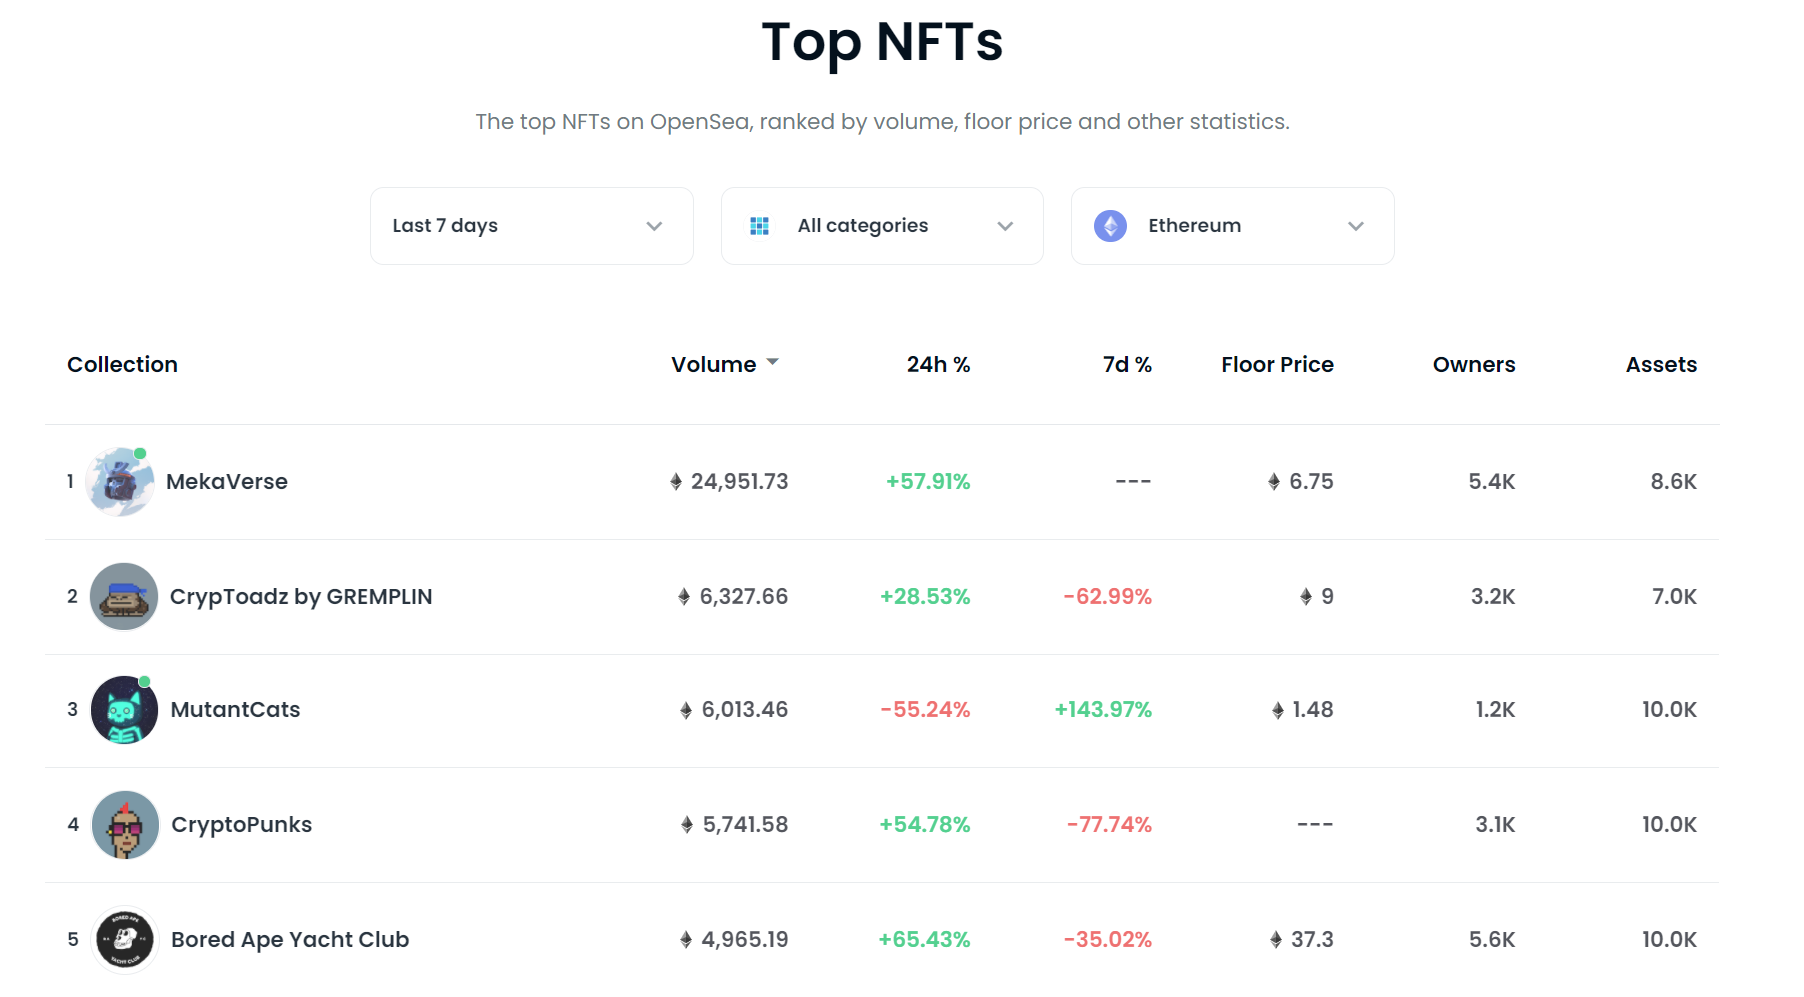 Are NFT Investment Opportunities Lurking in the OpenSea Stats / Rankings Page?